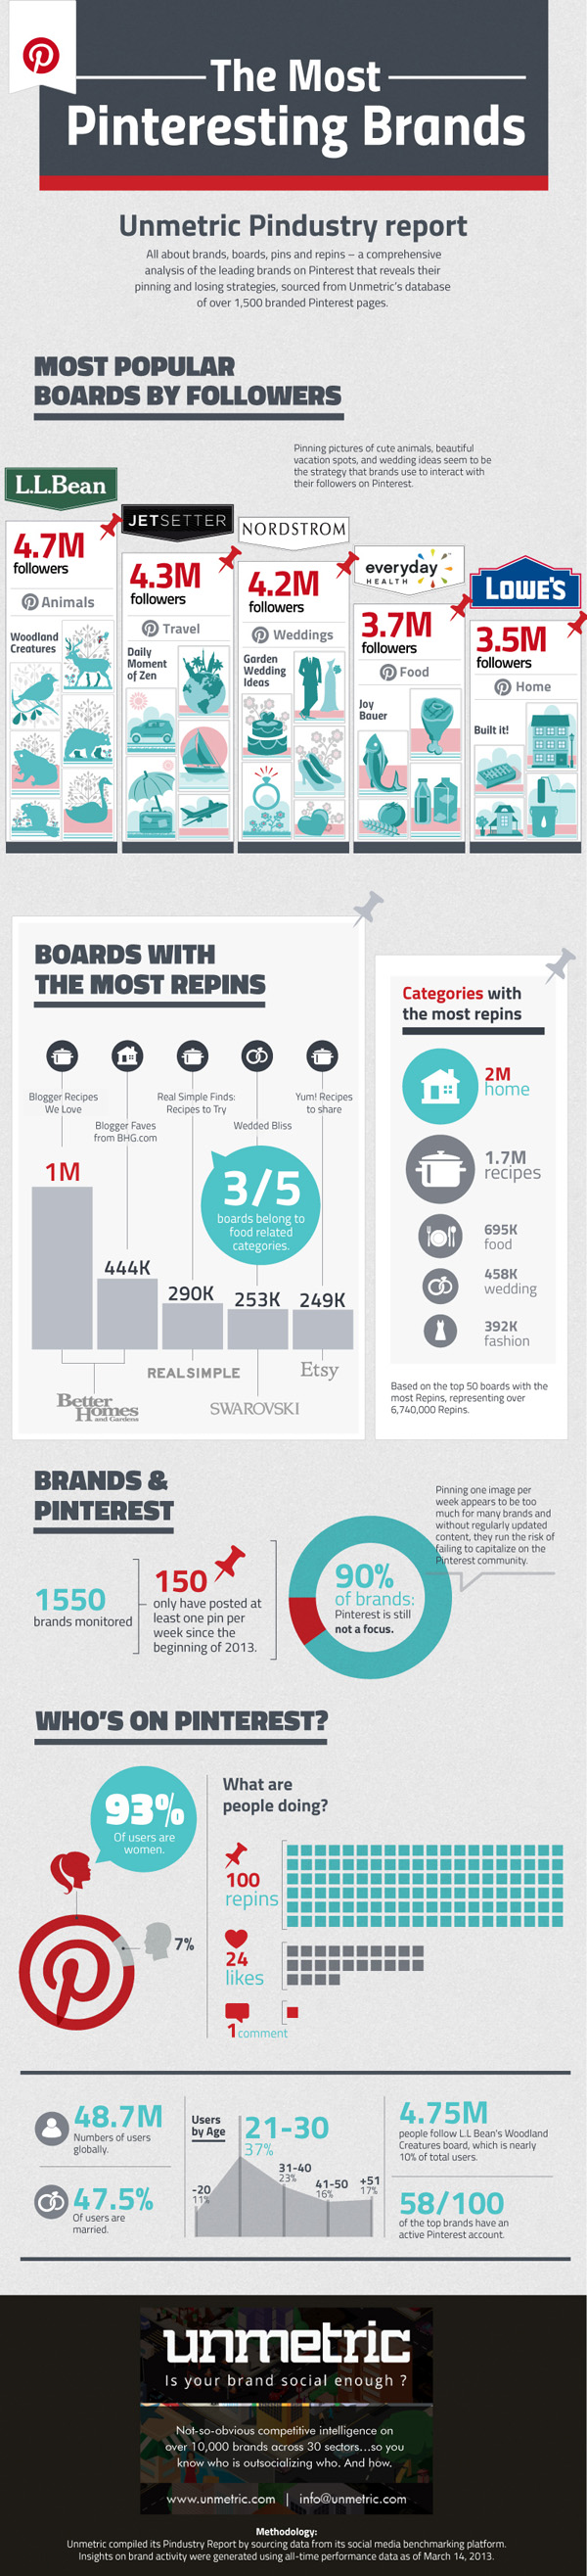 Pinterest Infographic By Unmetric